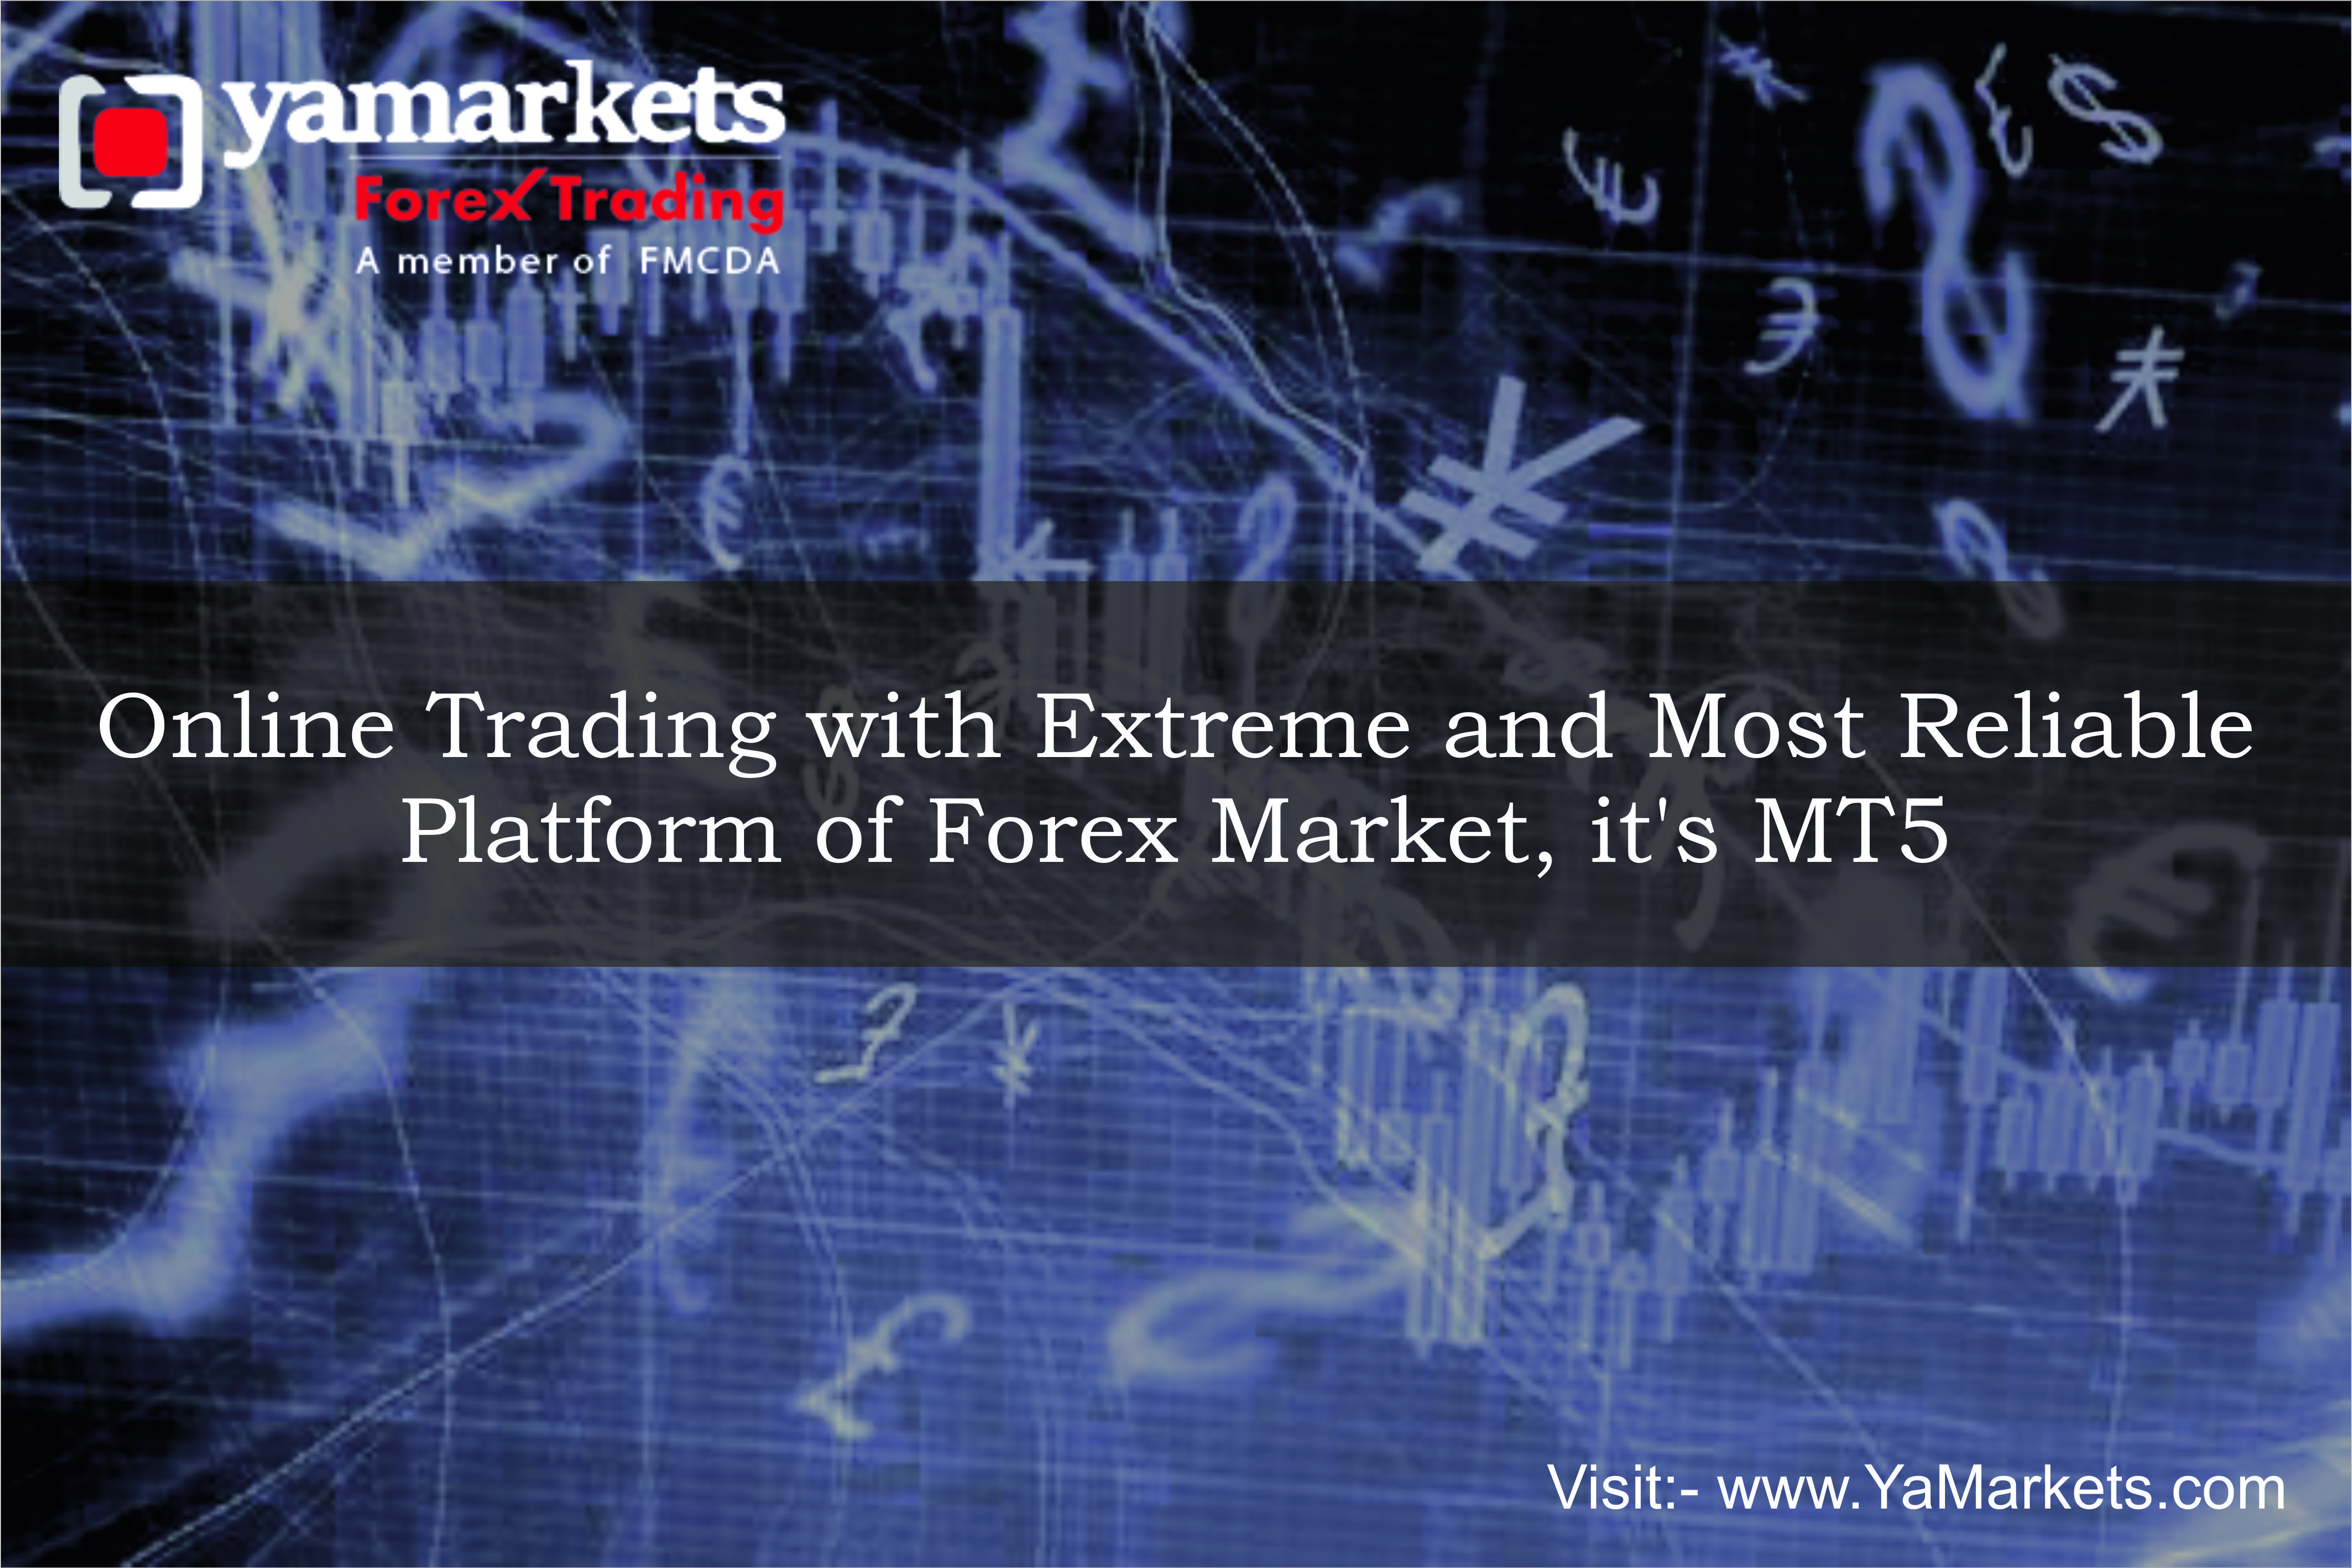 Online Trading With Extreme And Most Reliable Platform Of Forex